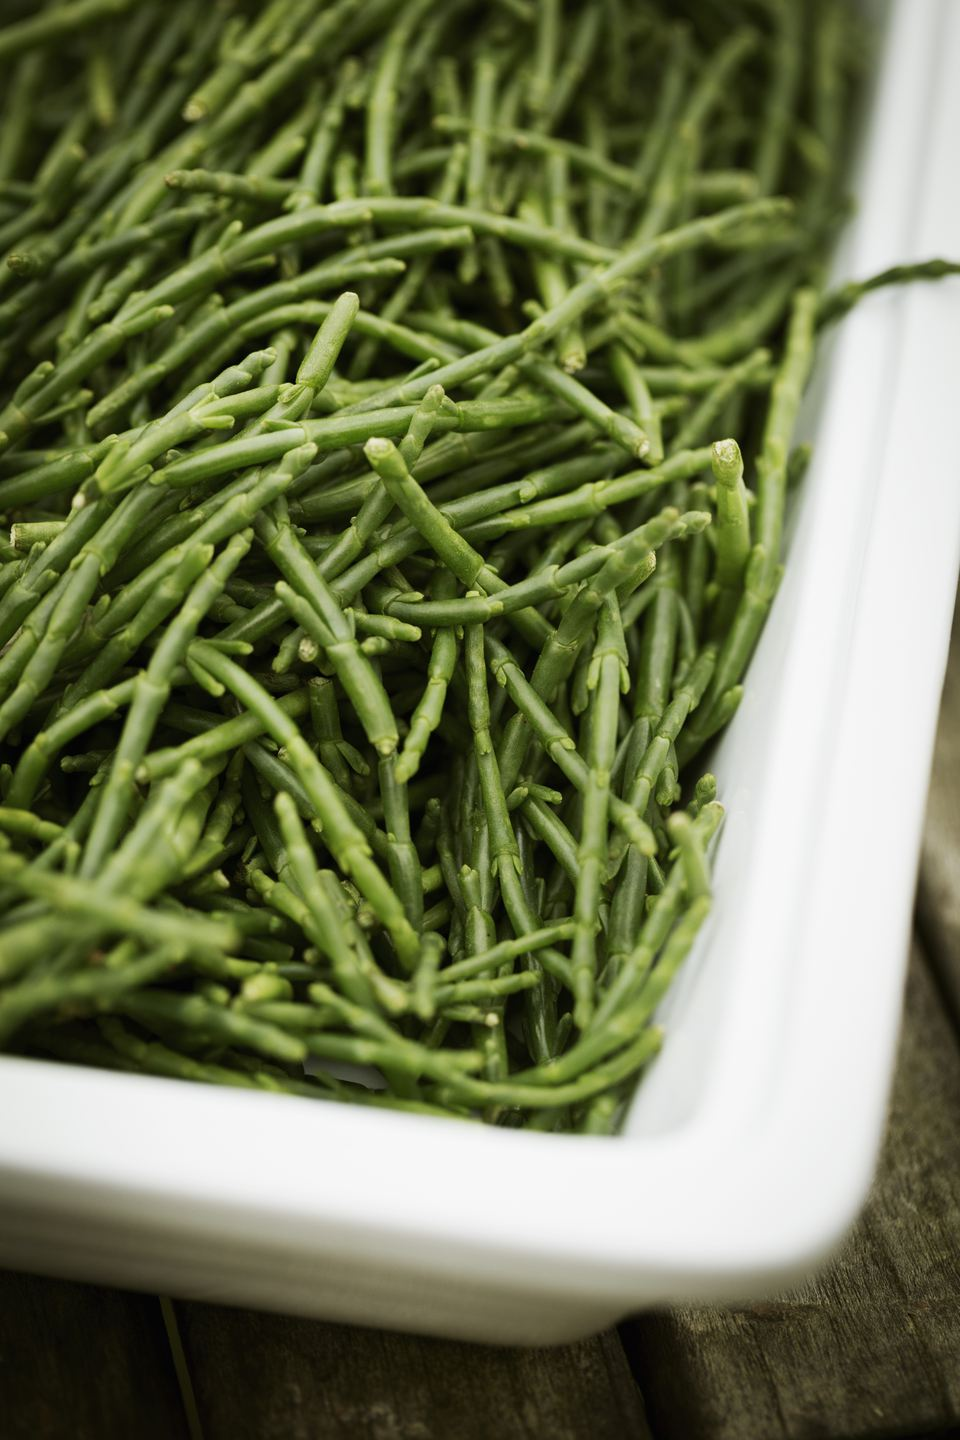 High angle view of a tray of samphire